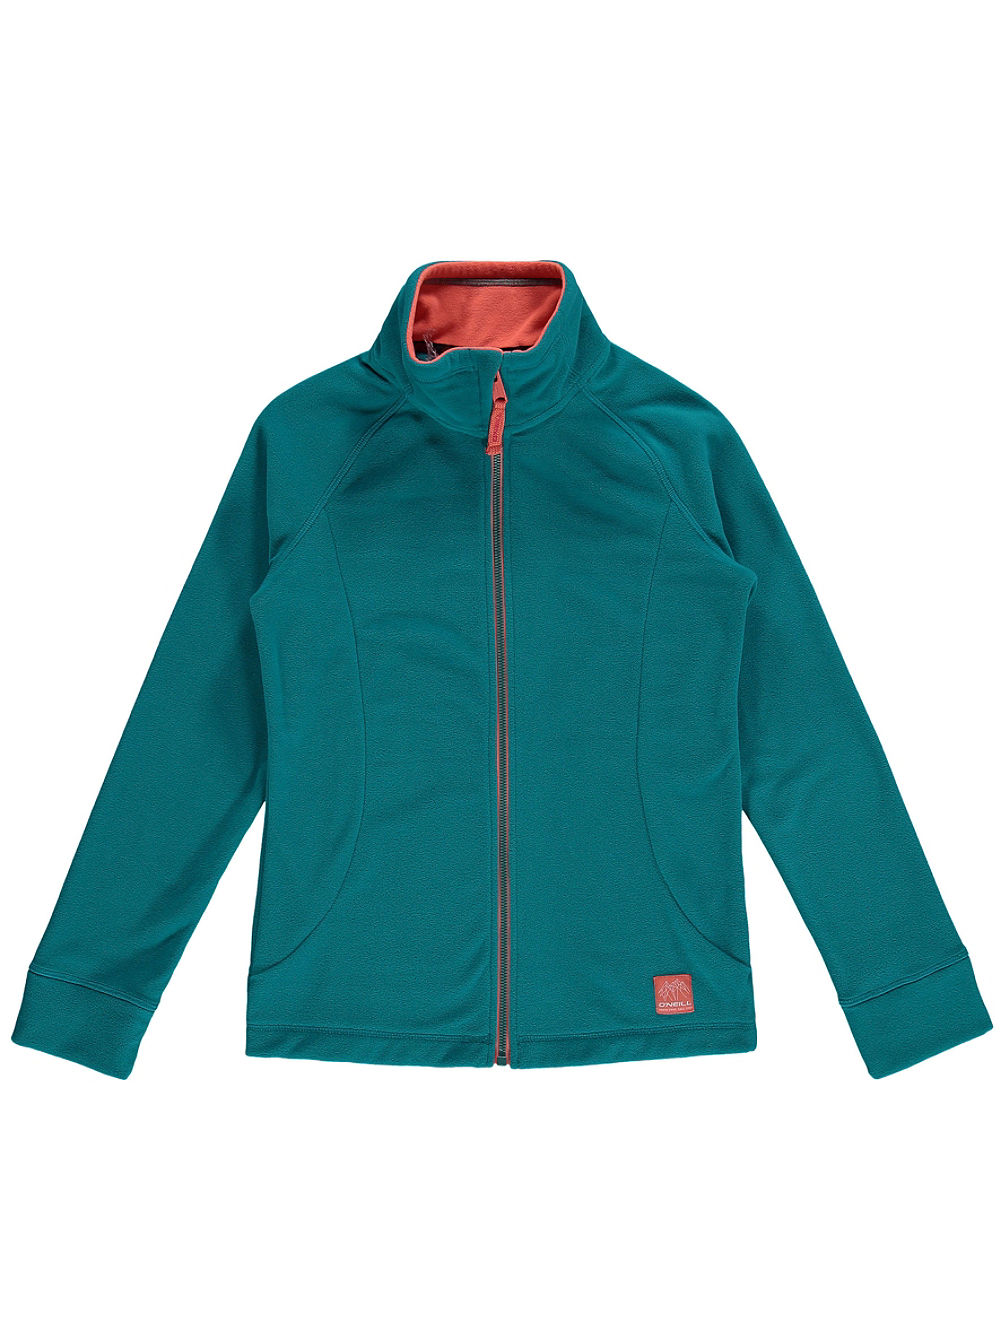 Slope Full Zip Fleece Jacket Girls